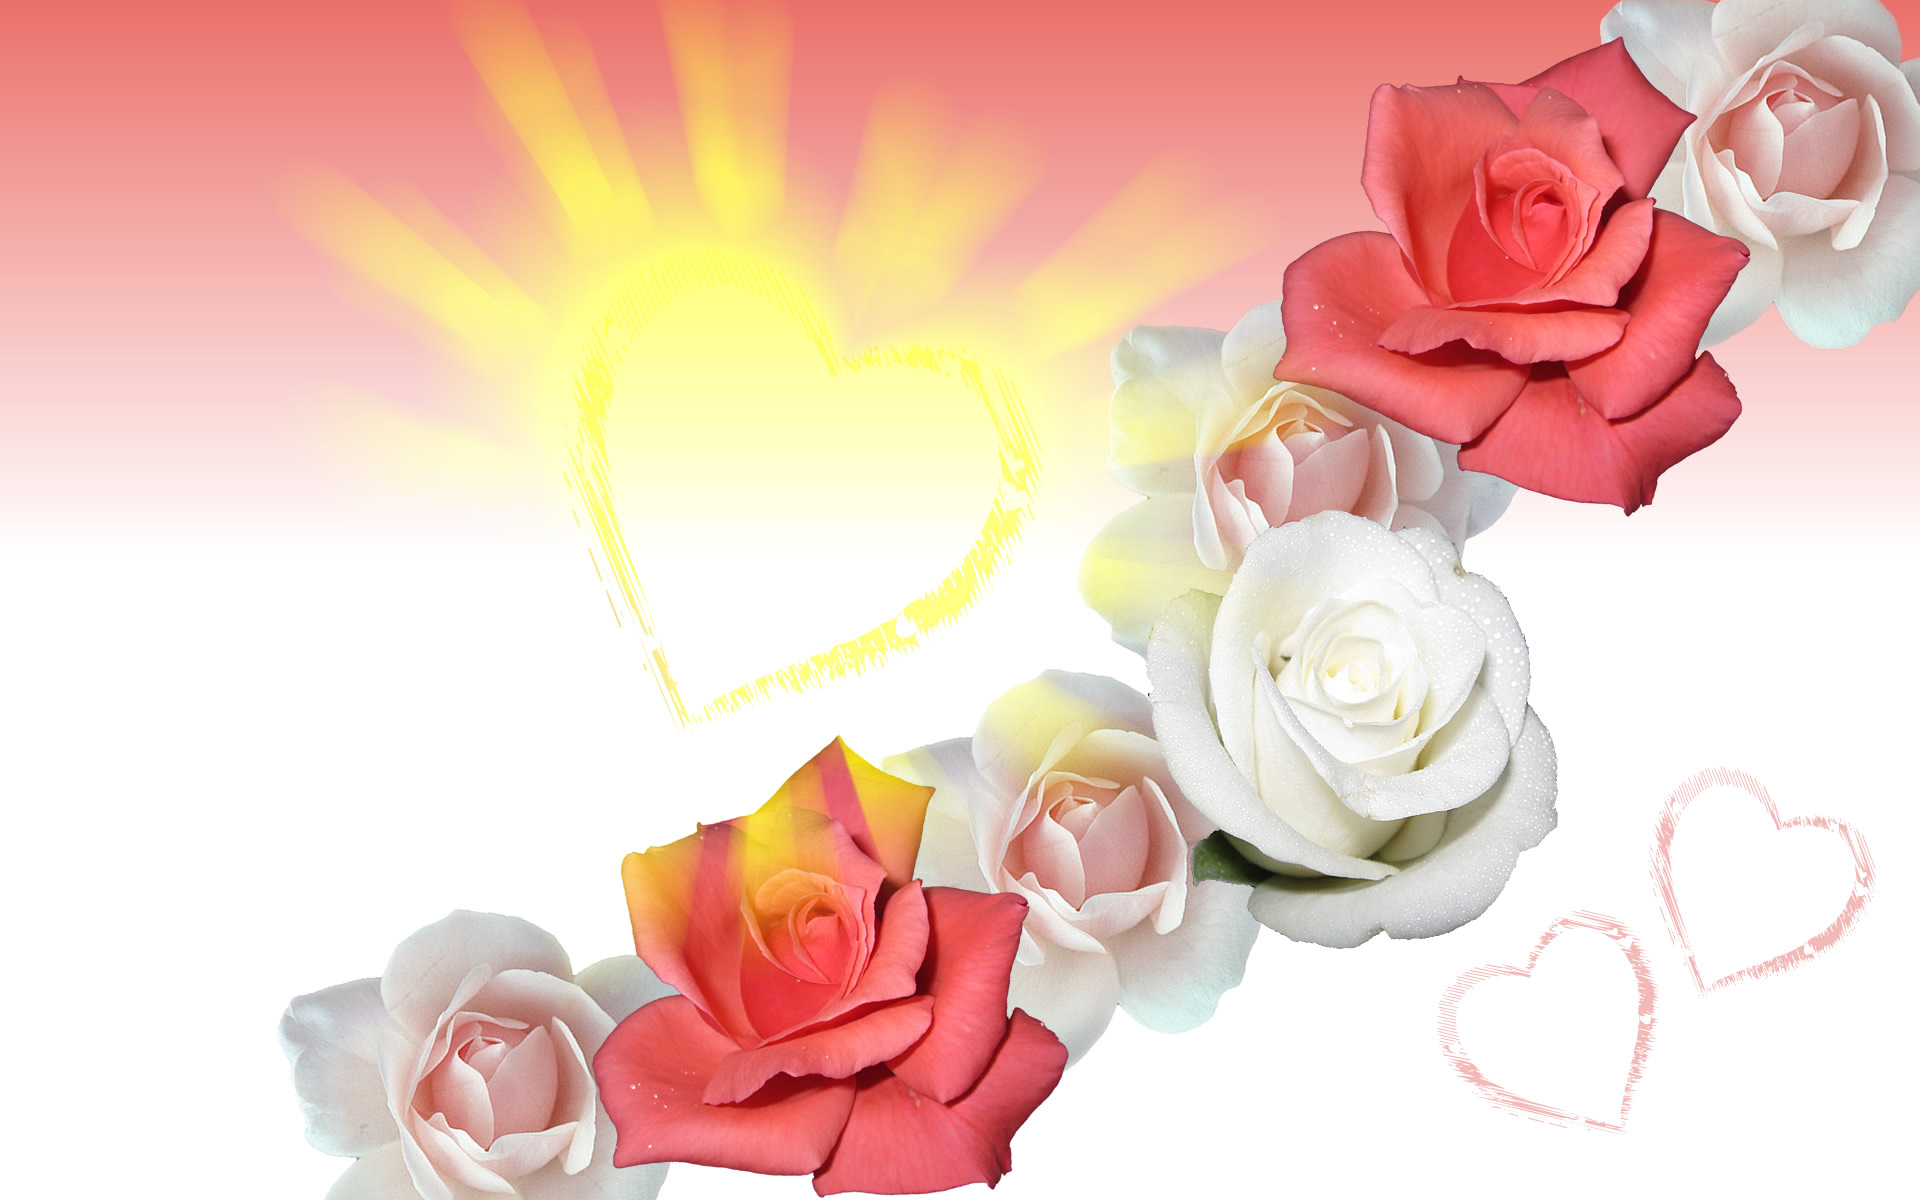 flower rose wallpaper heart of god Wallpaper nature god